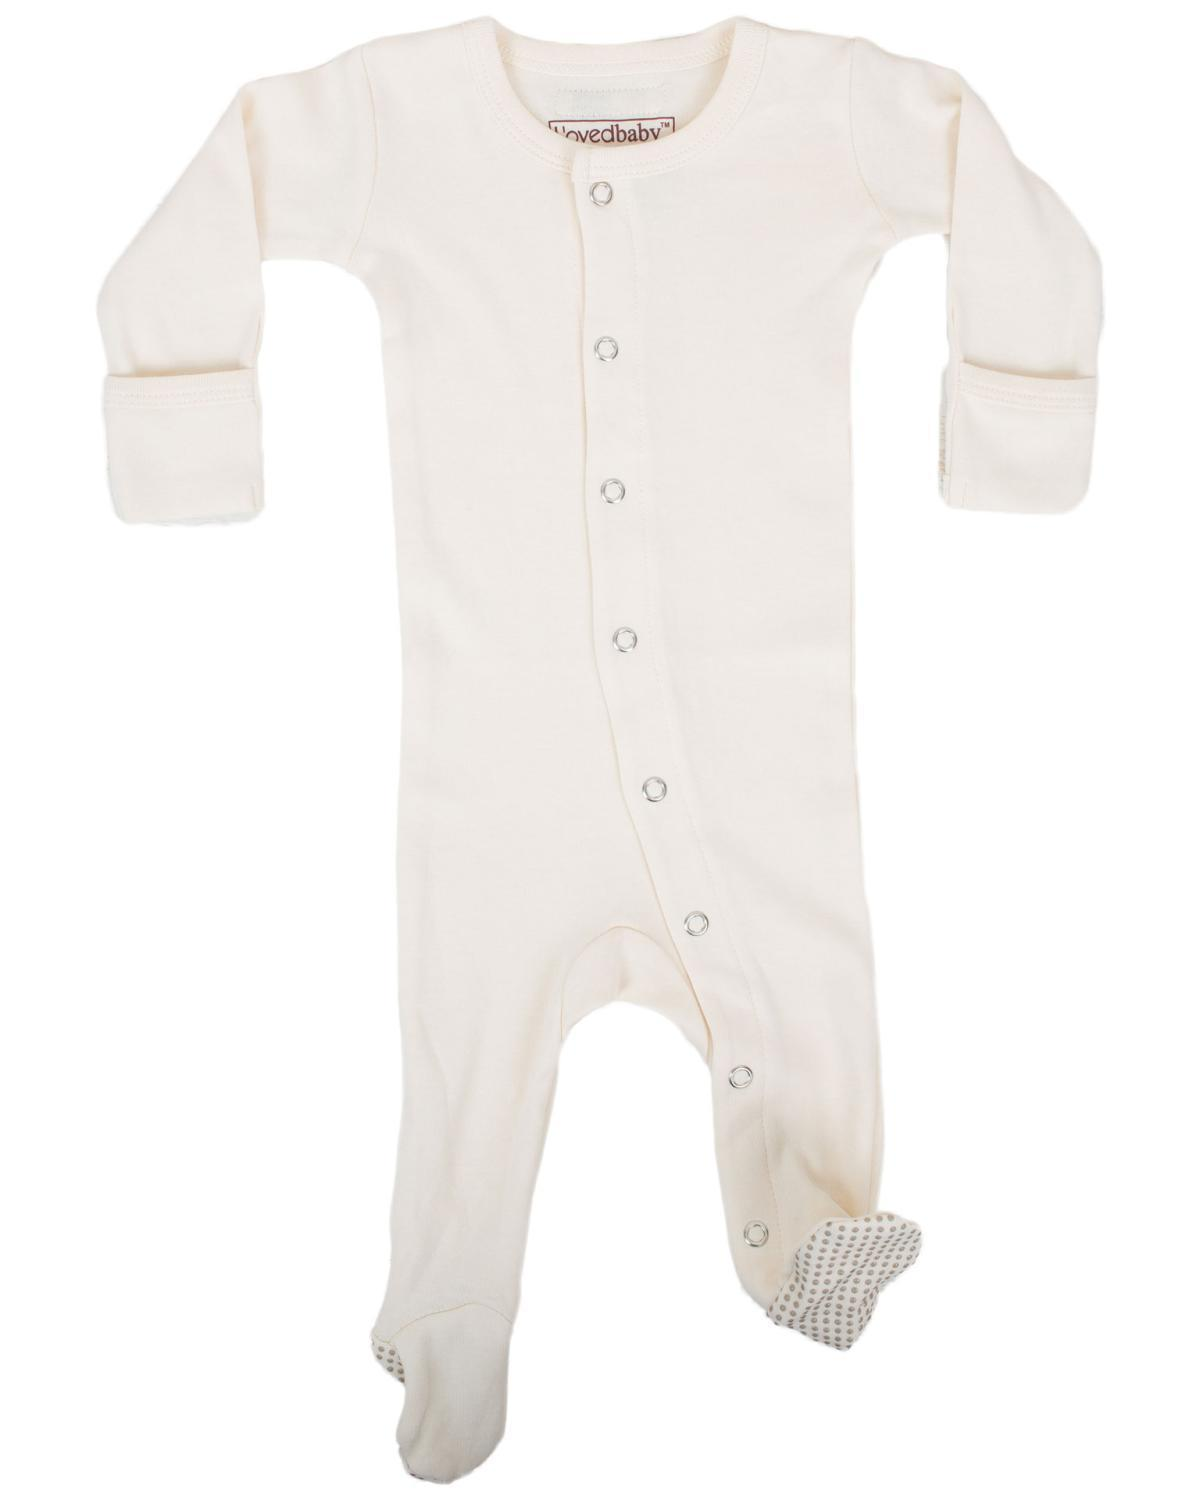 Little l'ovedbaby layette nb Footed Overall in Beige